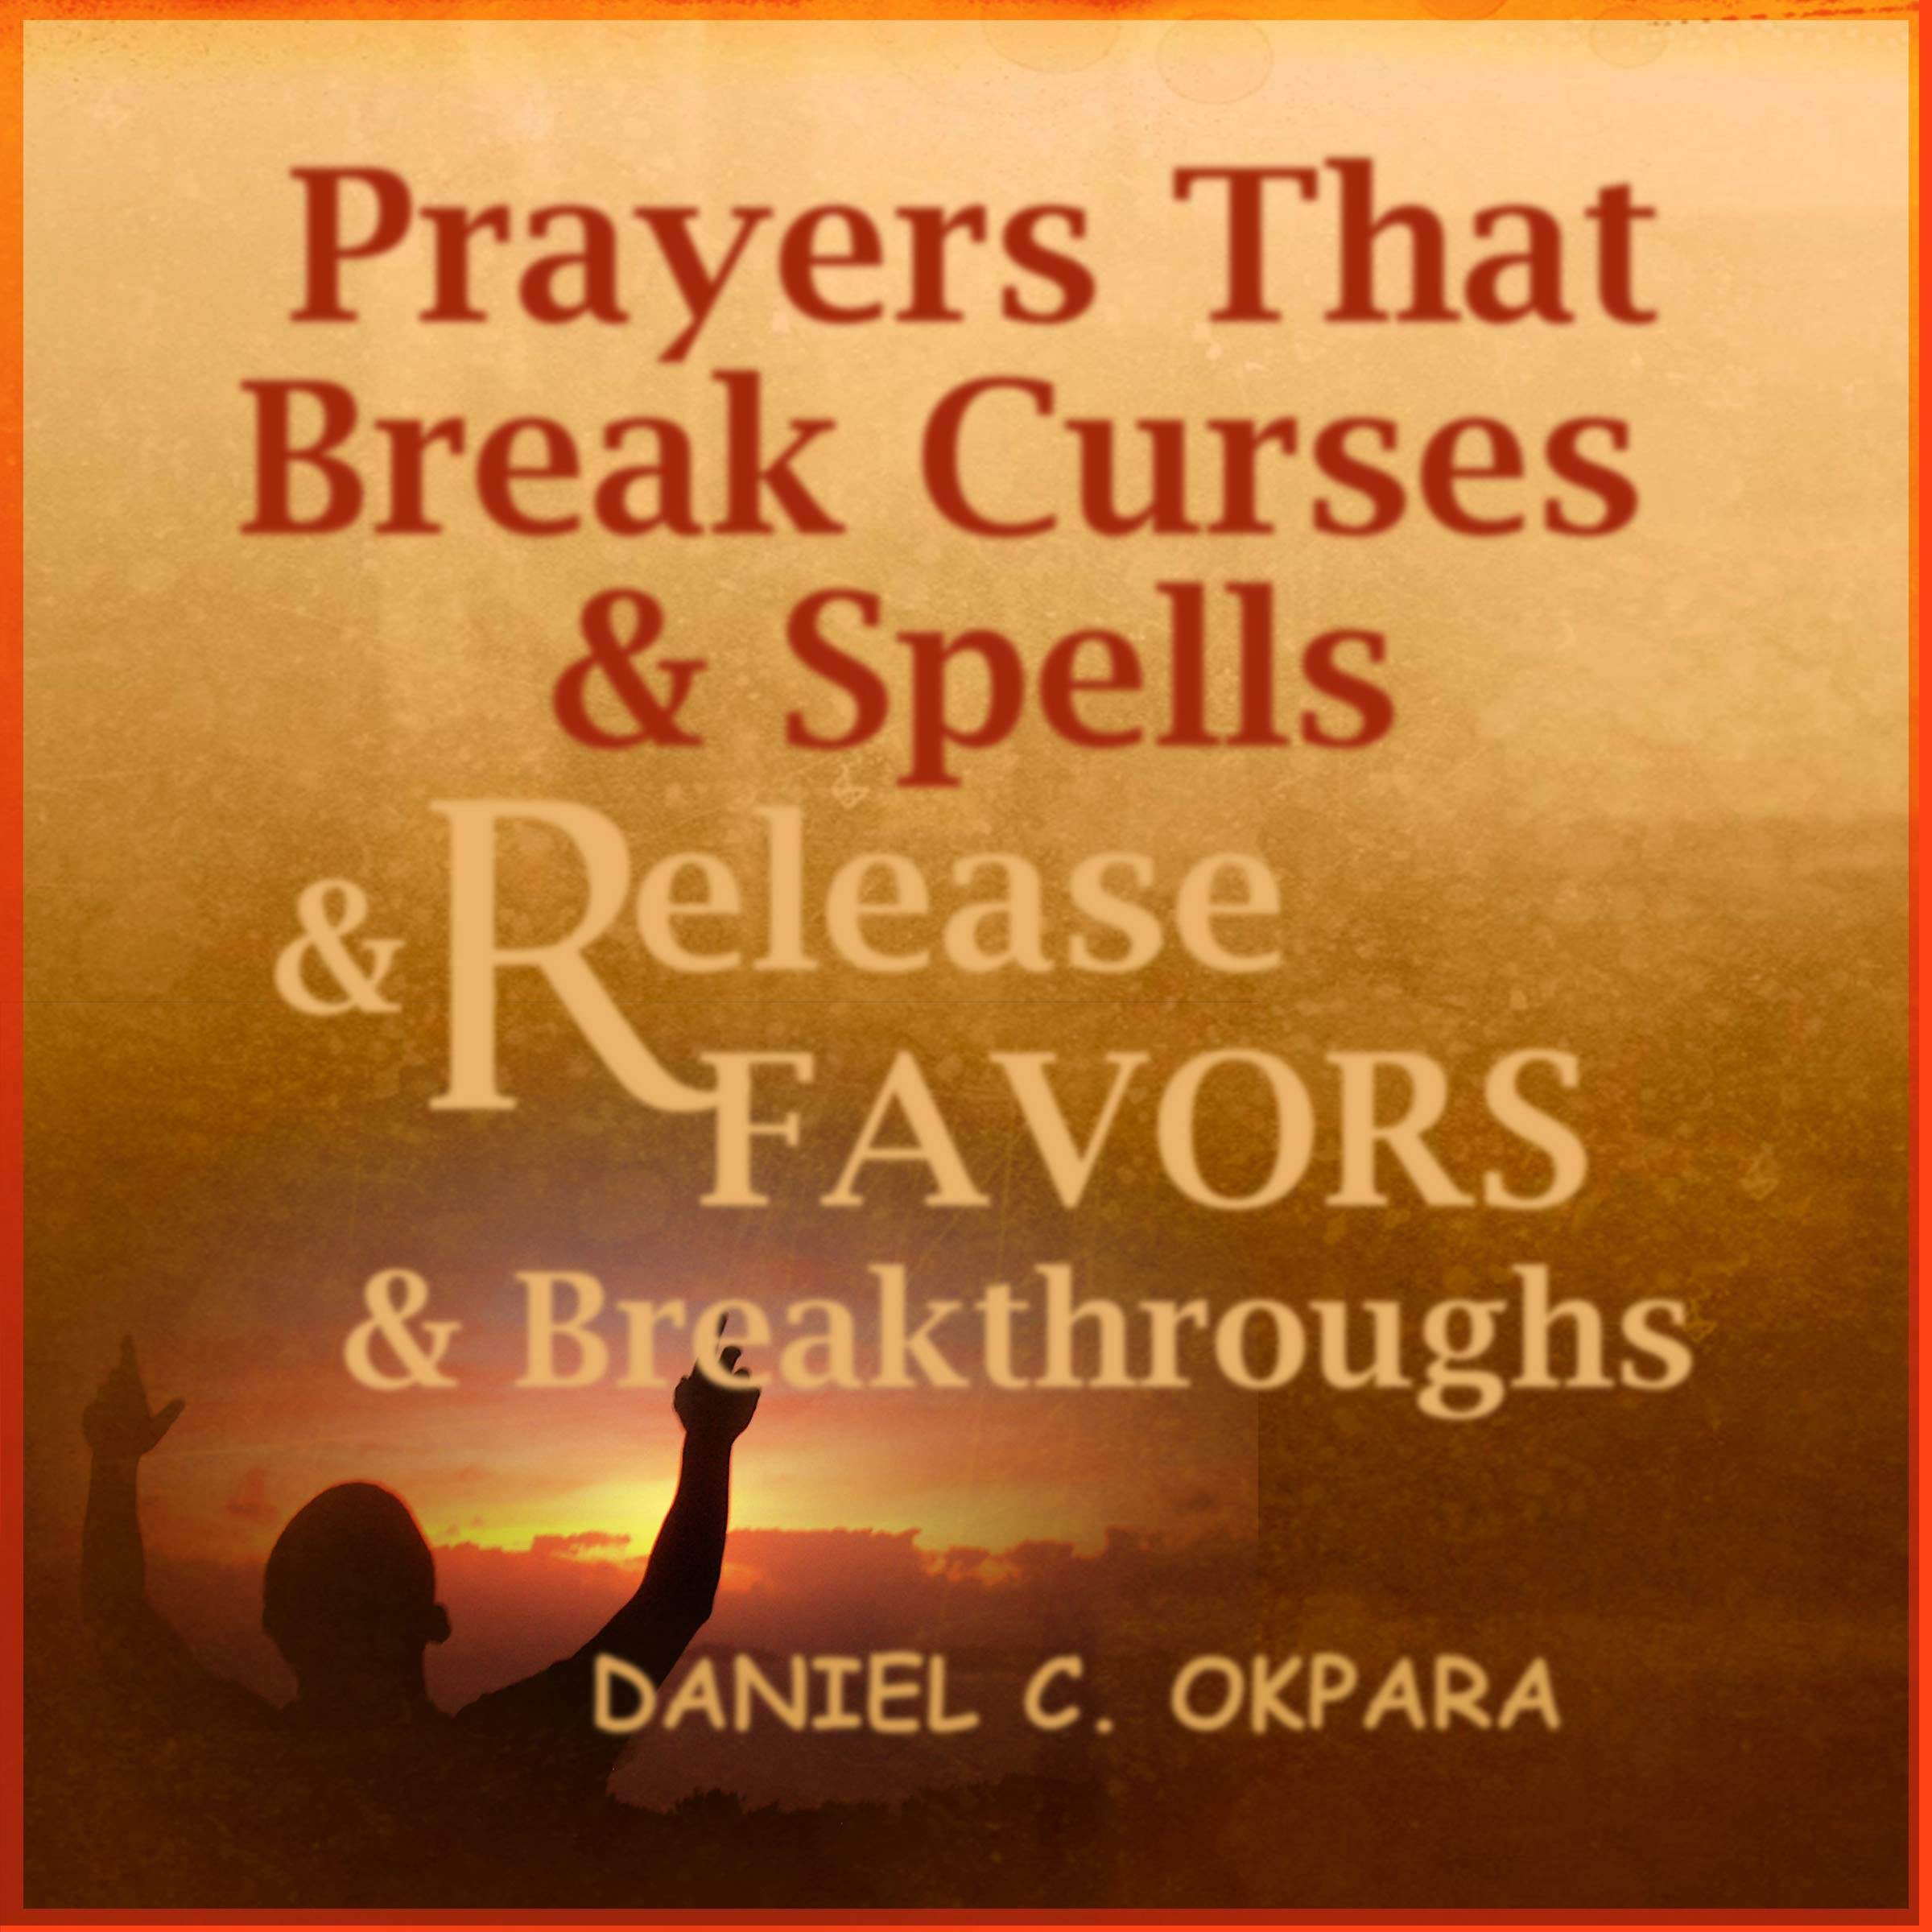 Prayers That Break Curses And Spells And Release Favors And Breakthroughs  55 Powerful Prophetic Prayers And Declarations For Breaking Curses And Spells And Commanding Favors In Your Life